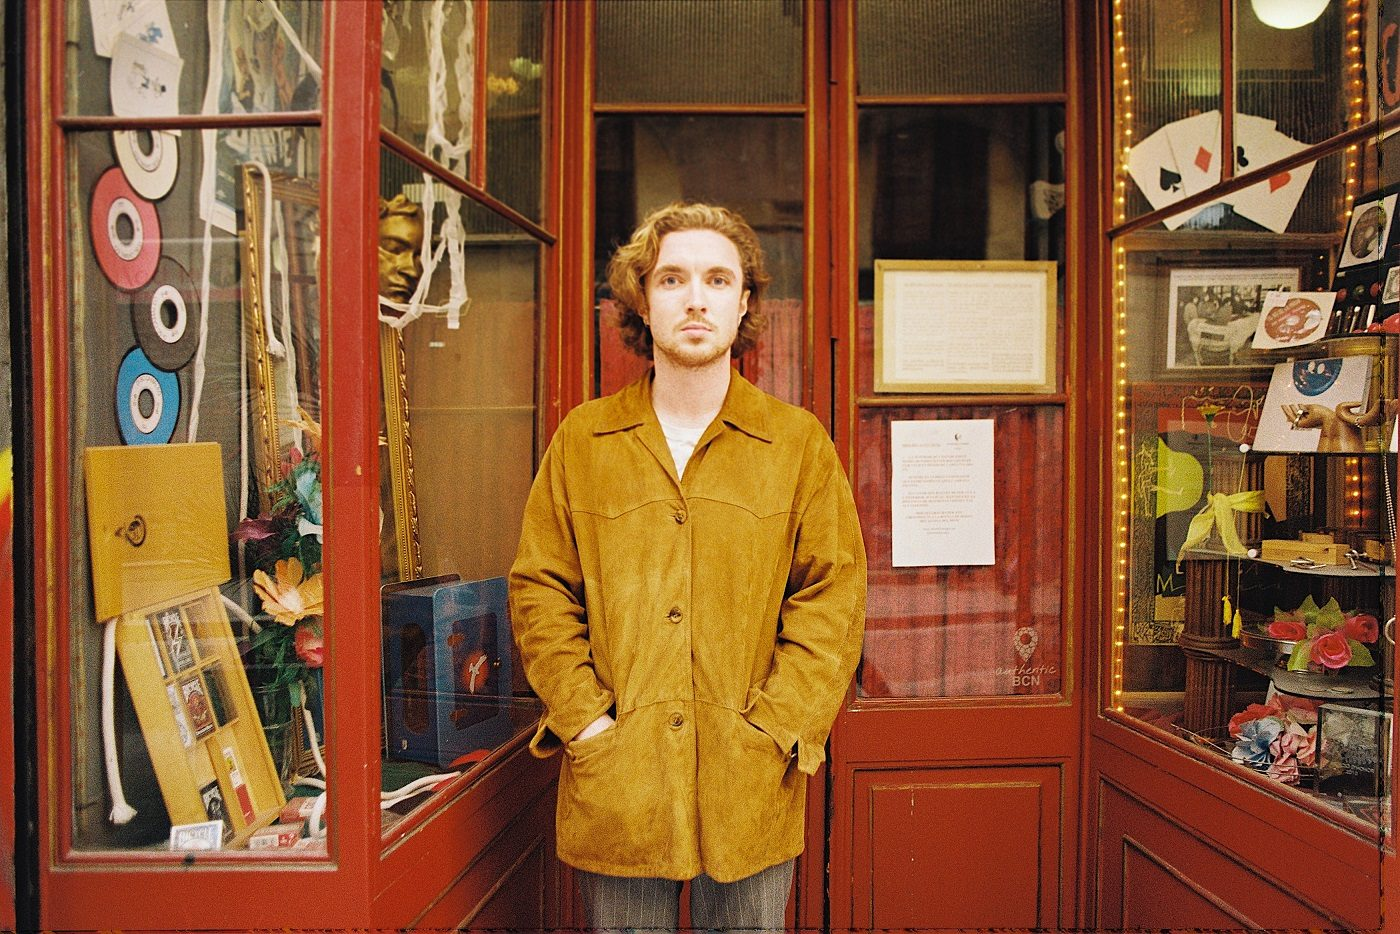 """David Keenan """"WHAT THEN?"""" Albumreview Interview"""